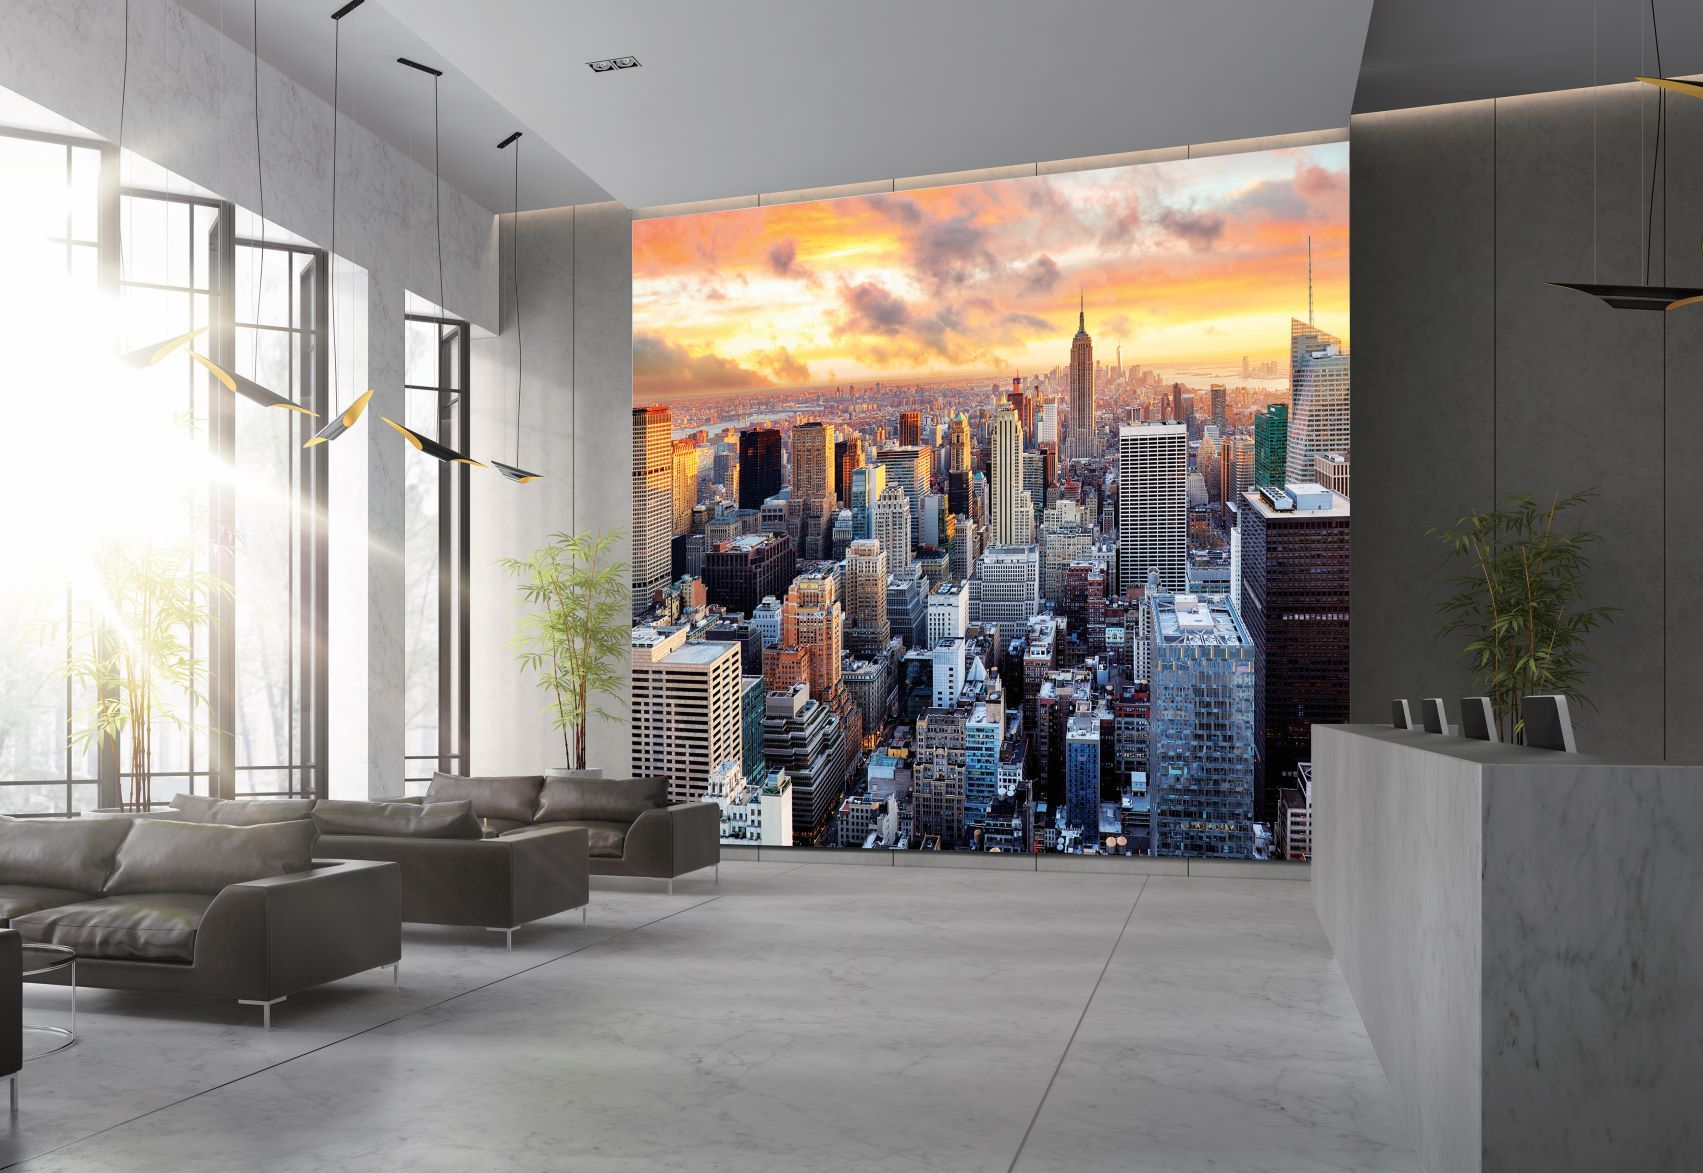 How This Next-Generation Screen May Soon Transform Office Design